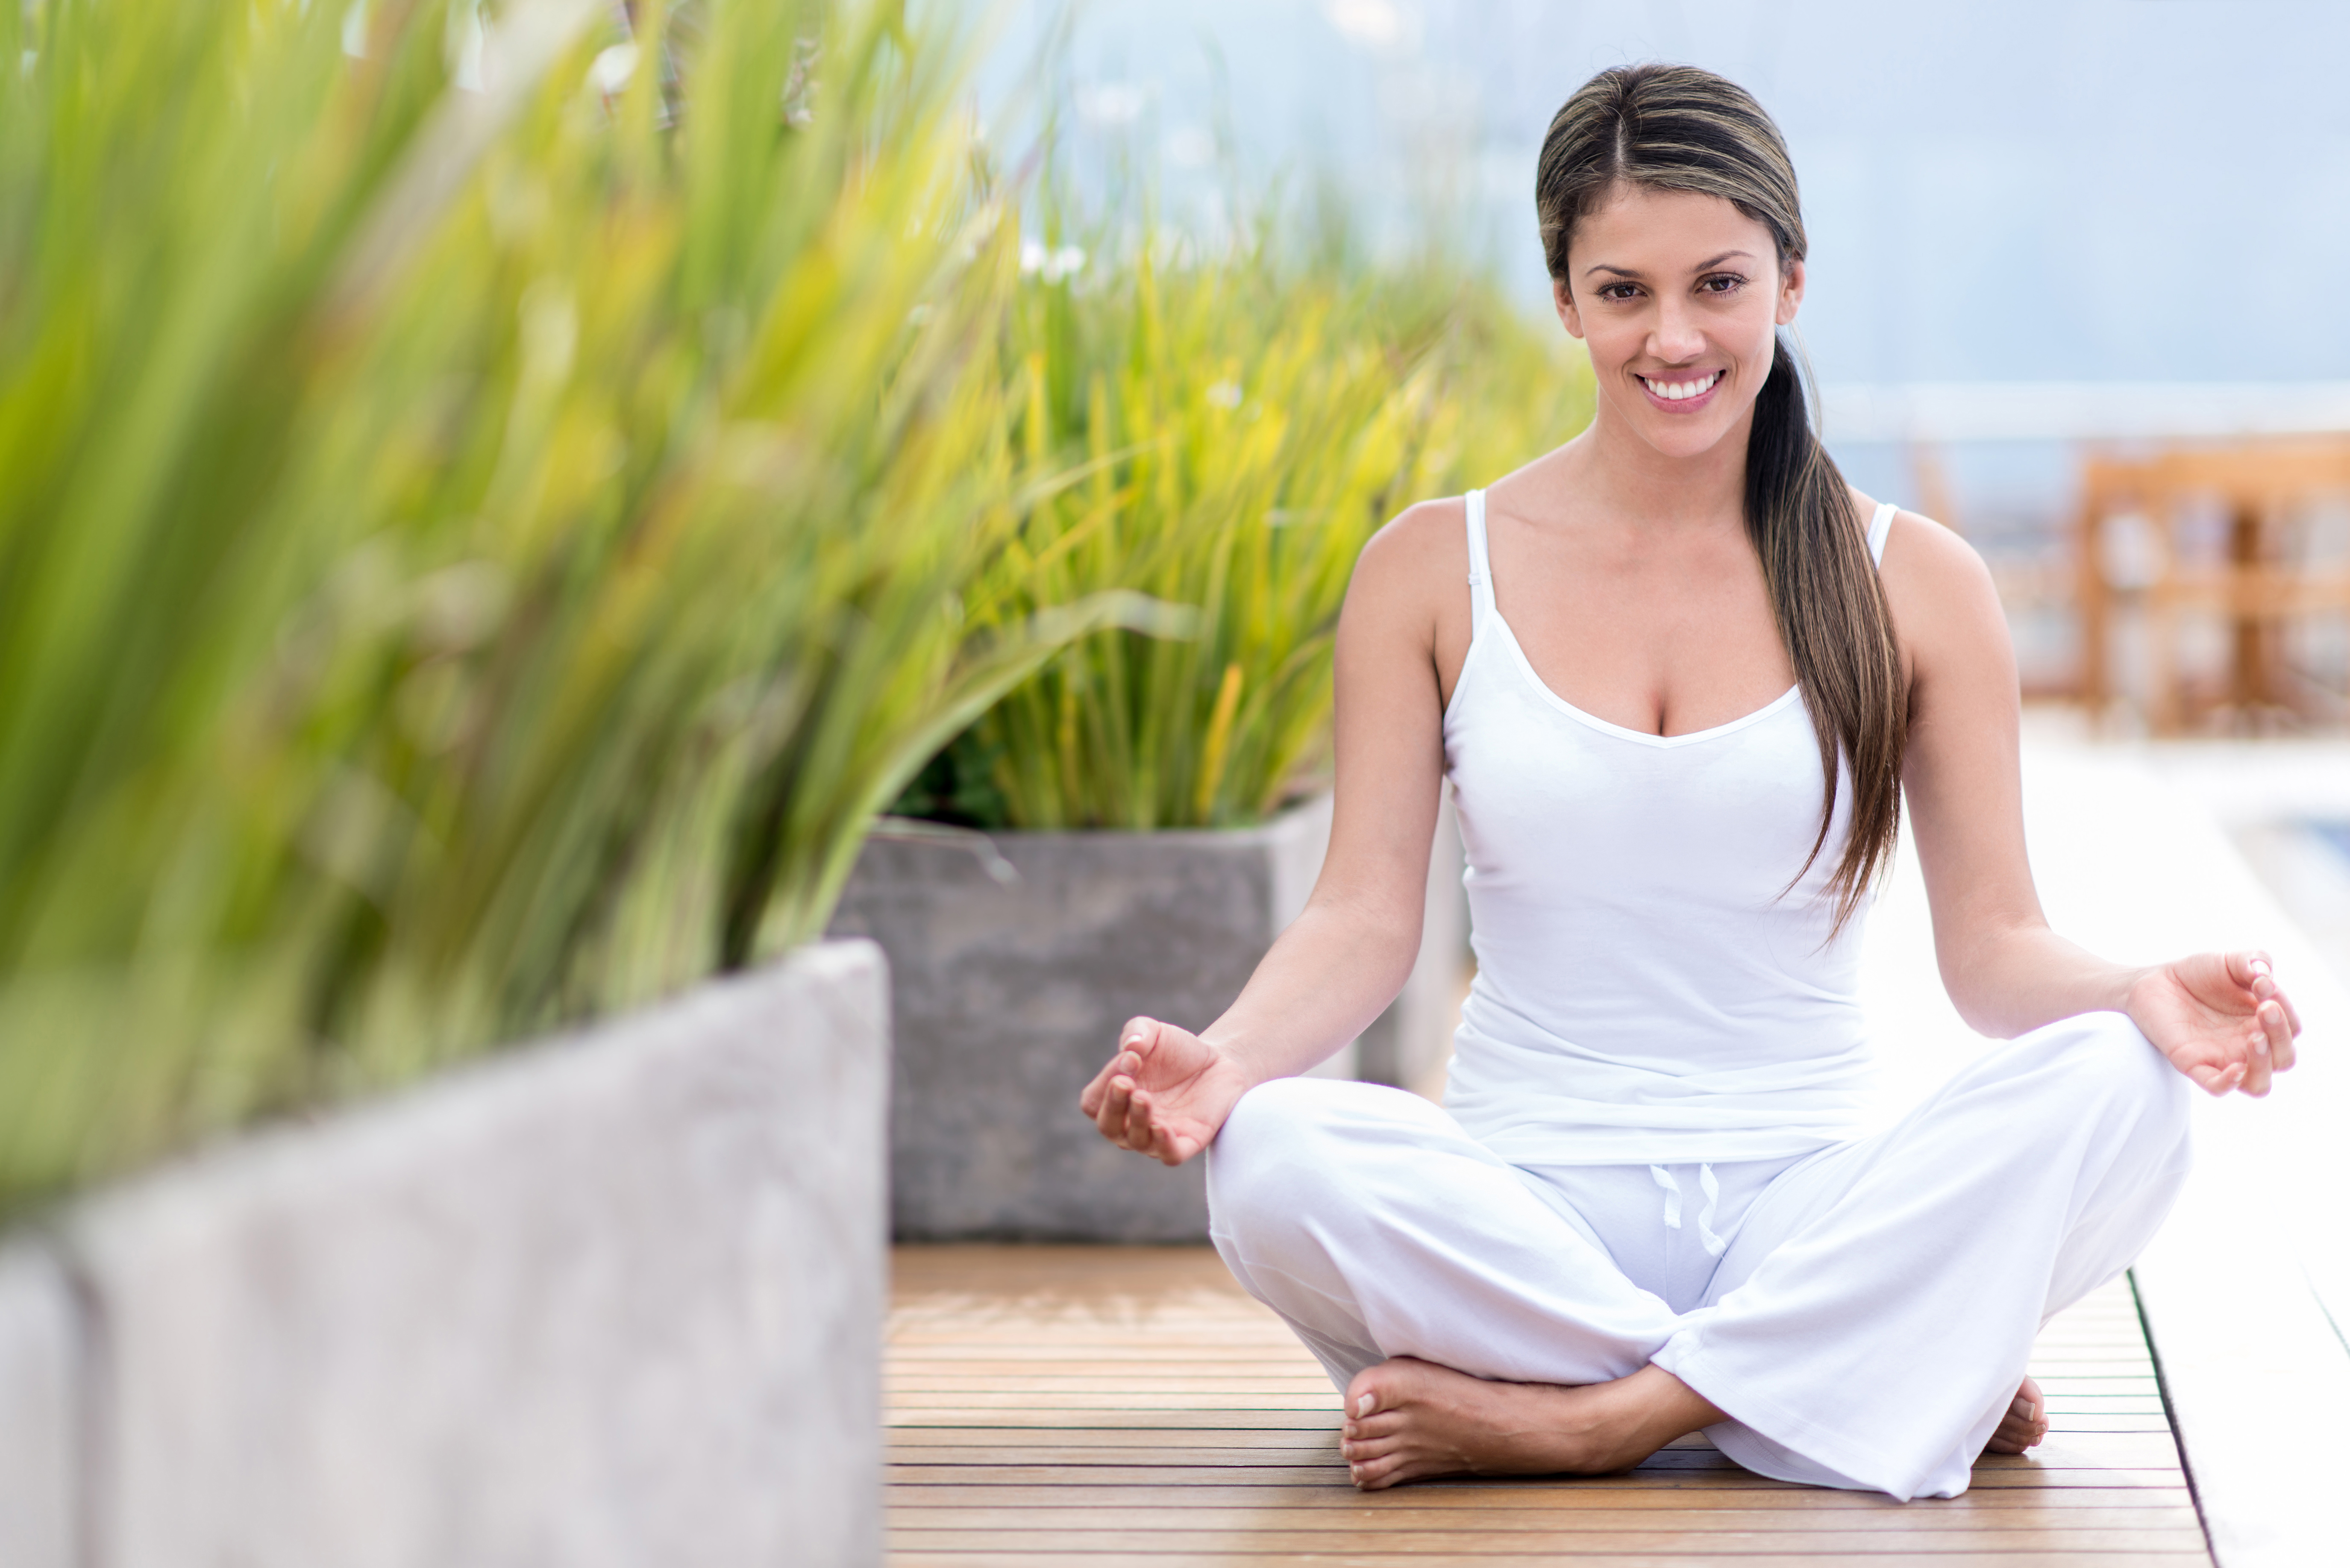 Yoga woman sitting on the floor and smiling outdoors